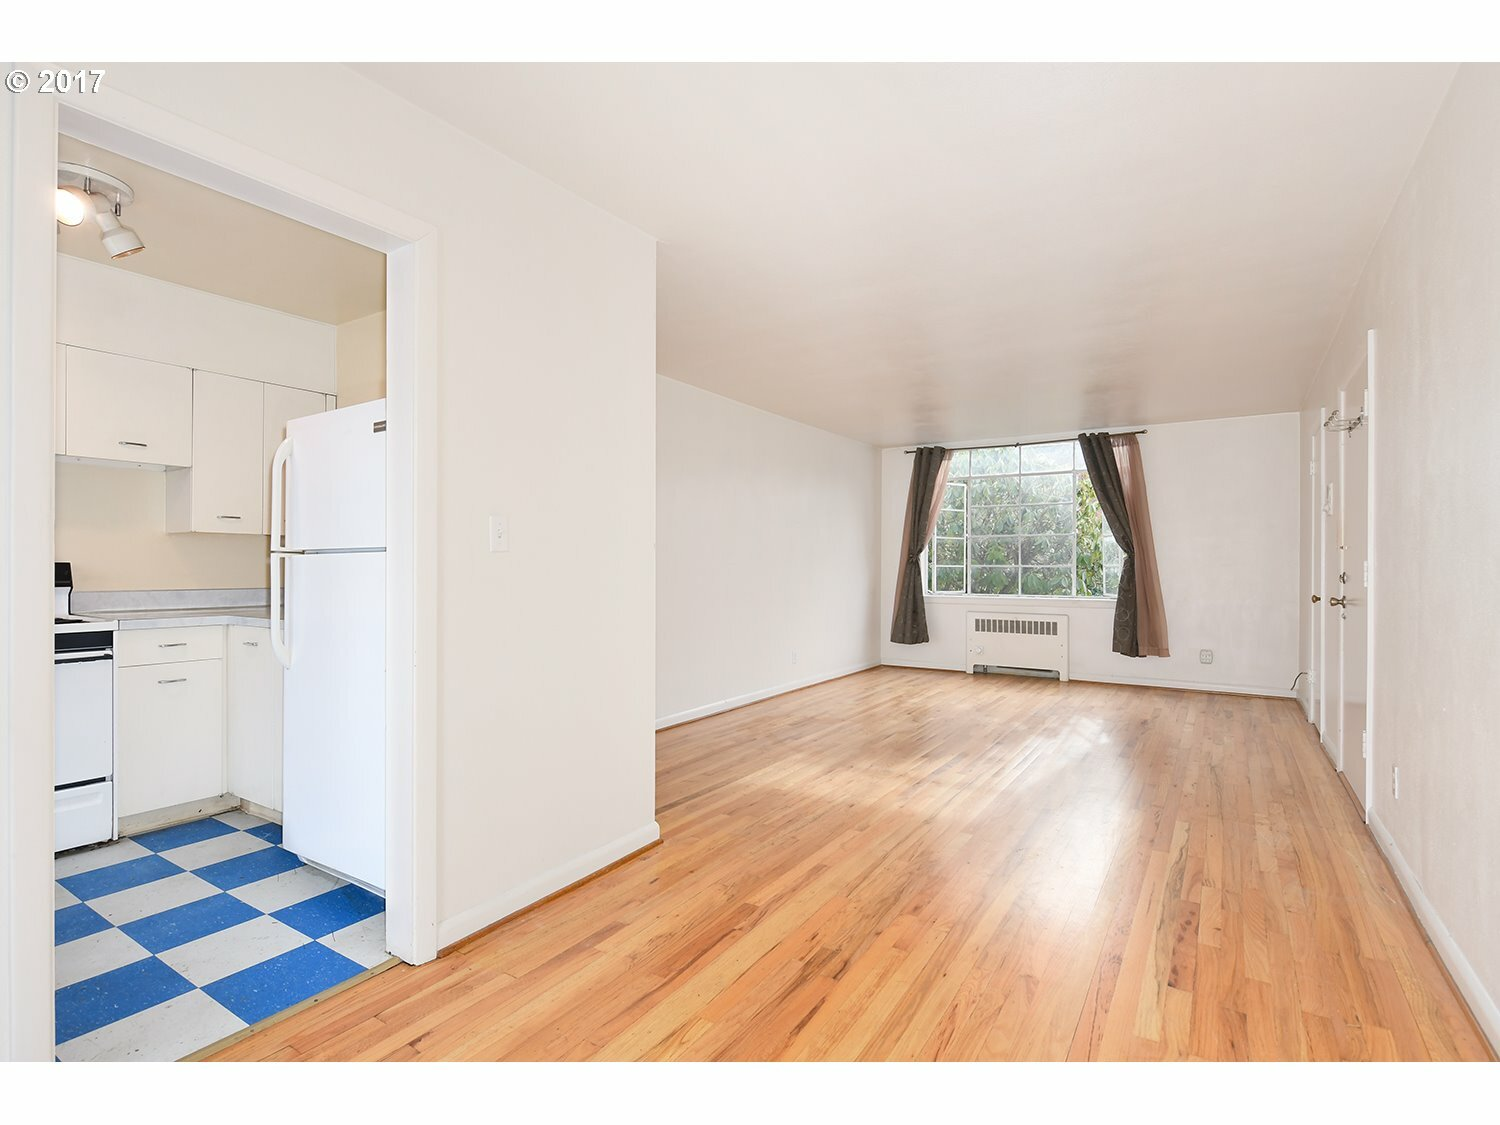 2173 Nw Irving St 8, Portland, OR - USA (photo 4)